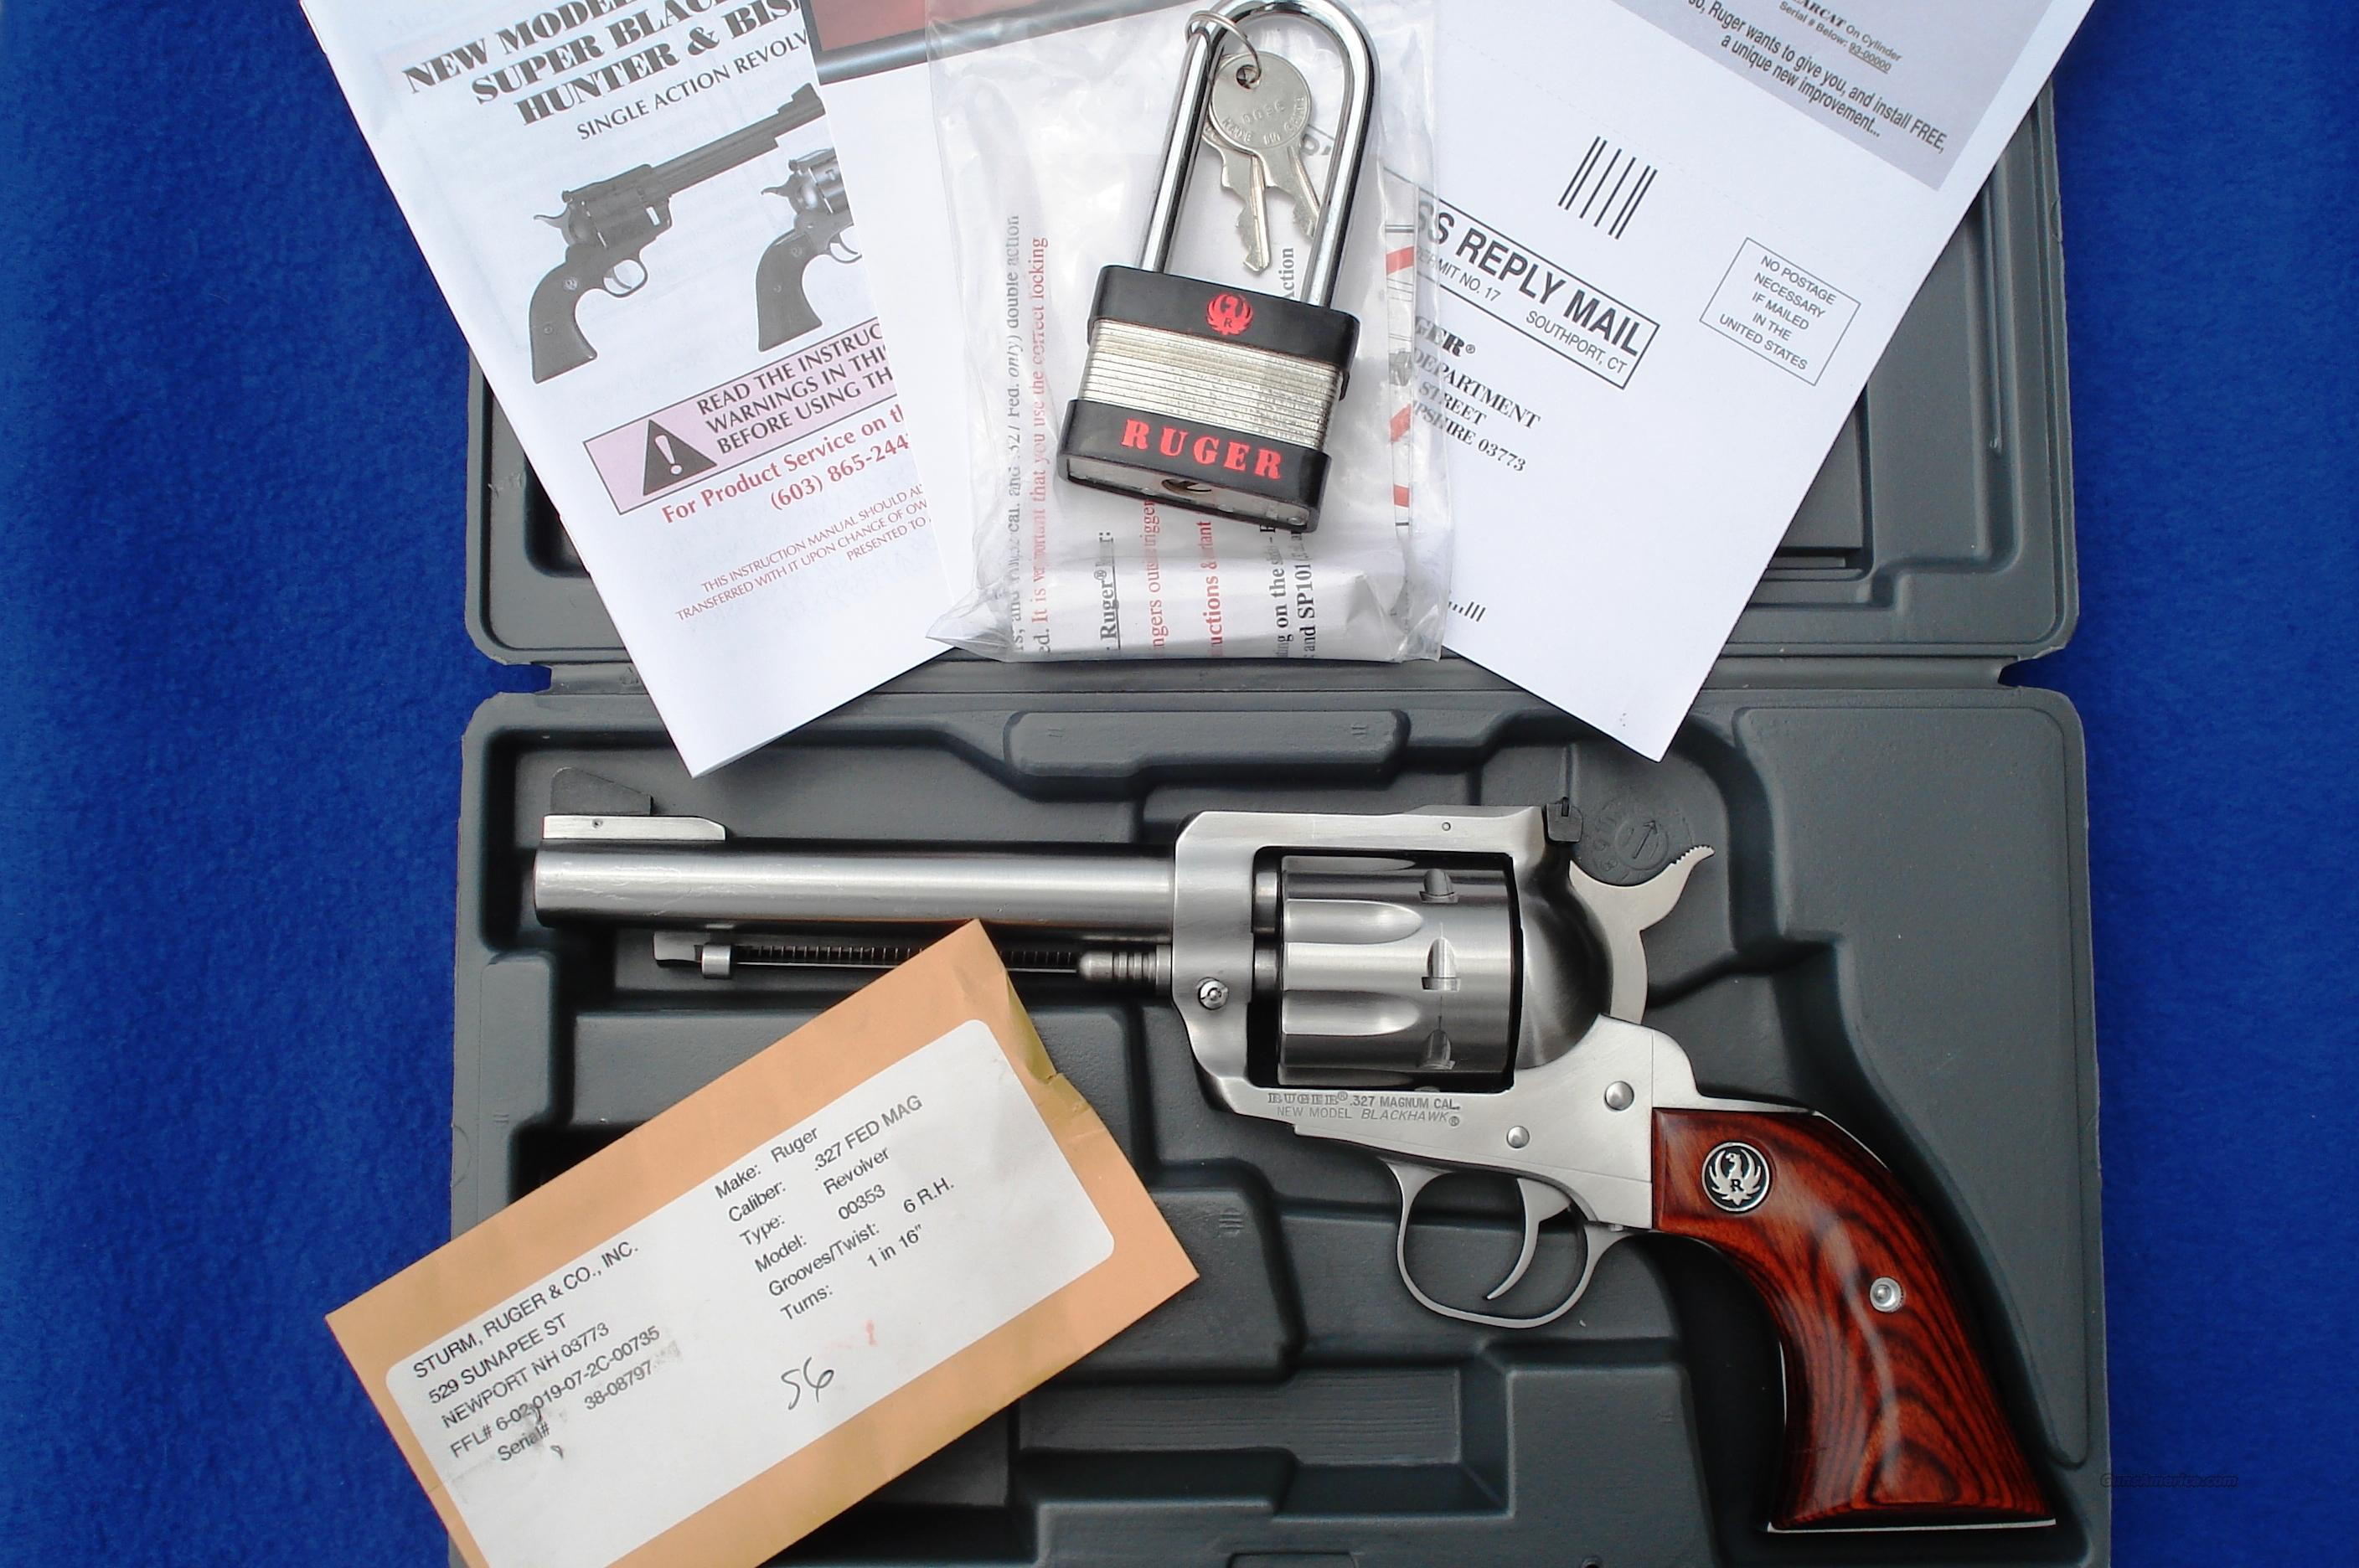 Ruger Blackhawk .327 Fed Mag 8 Shot Stainless Steel 327 Box, Paperwork  Guns > Pistols > Ruger Single Action Revolvers > Blackhawk Type